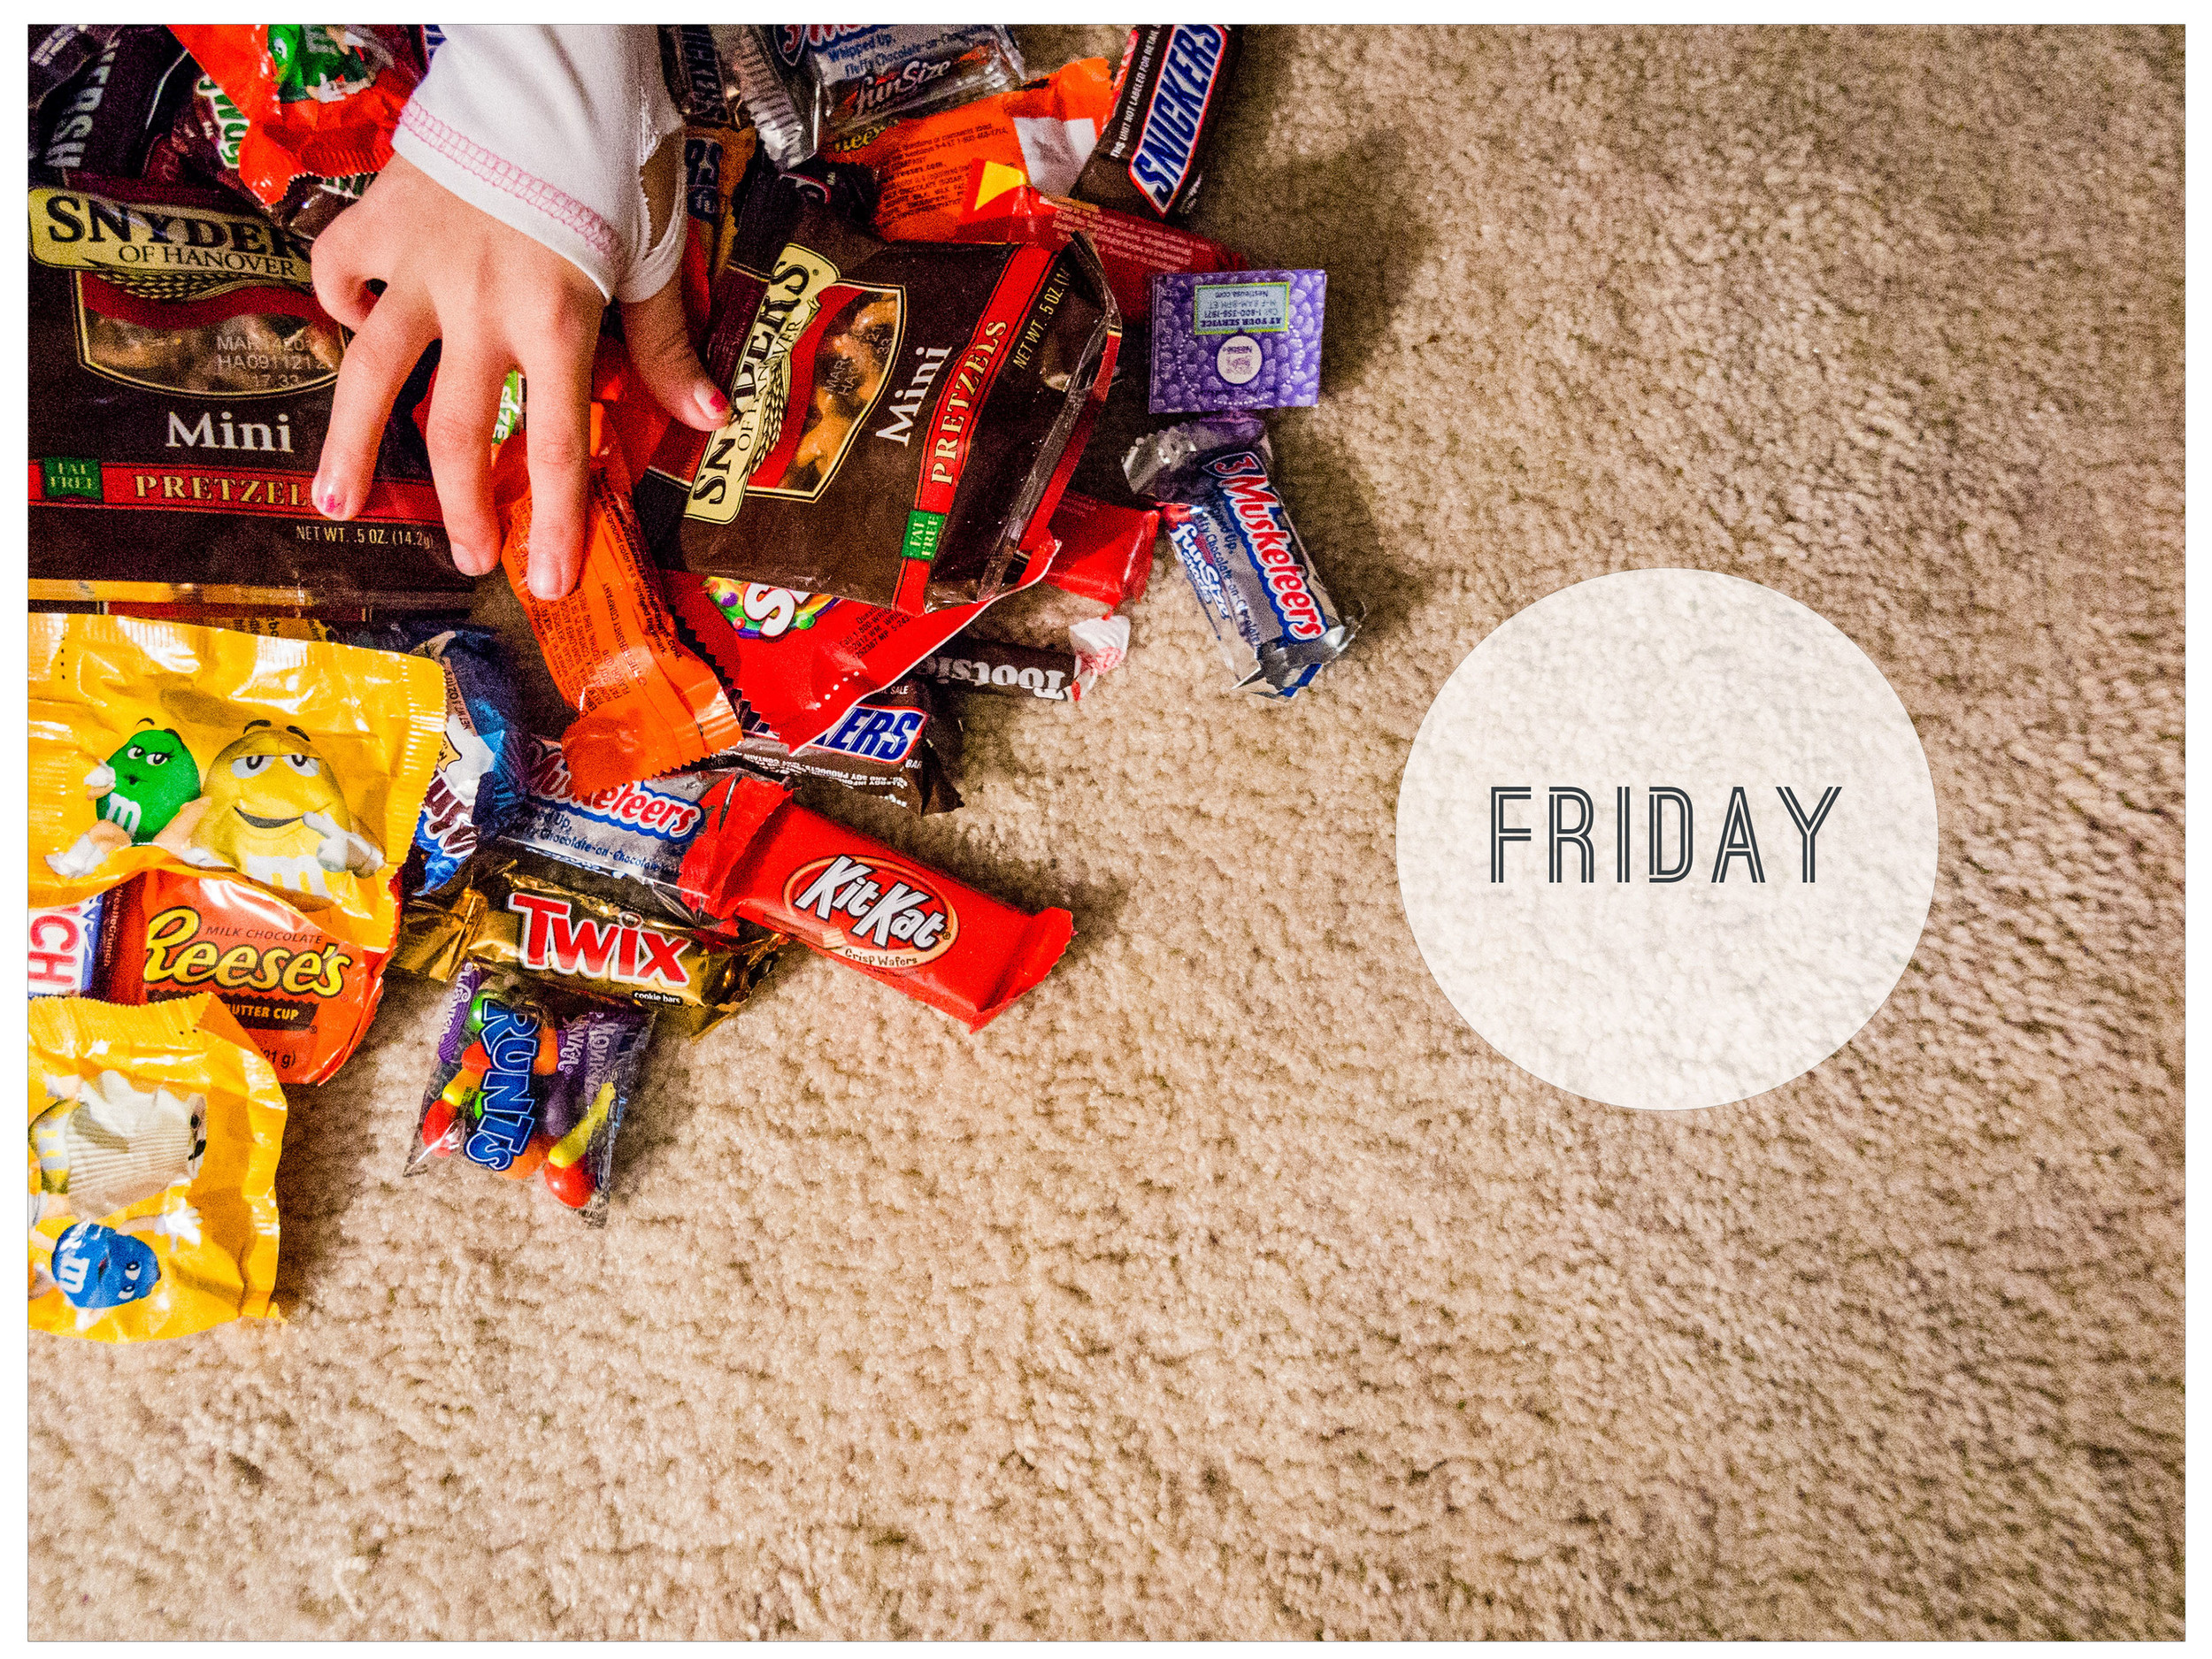 Week in the Life 2014-Friday: Intro | Halloween candy | yolandamadethis.com